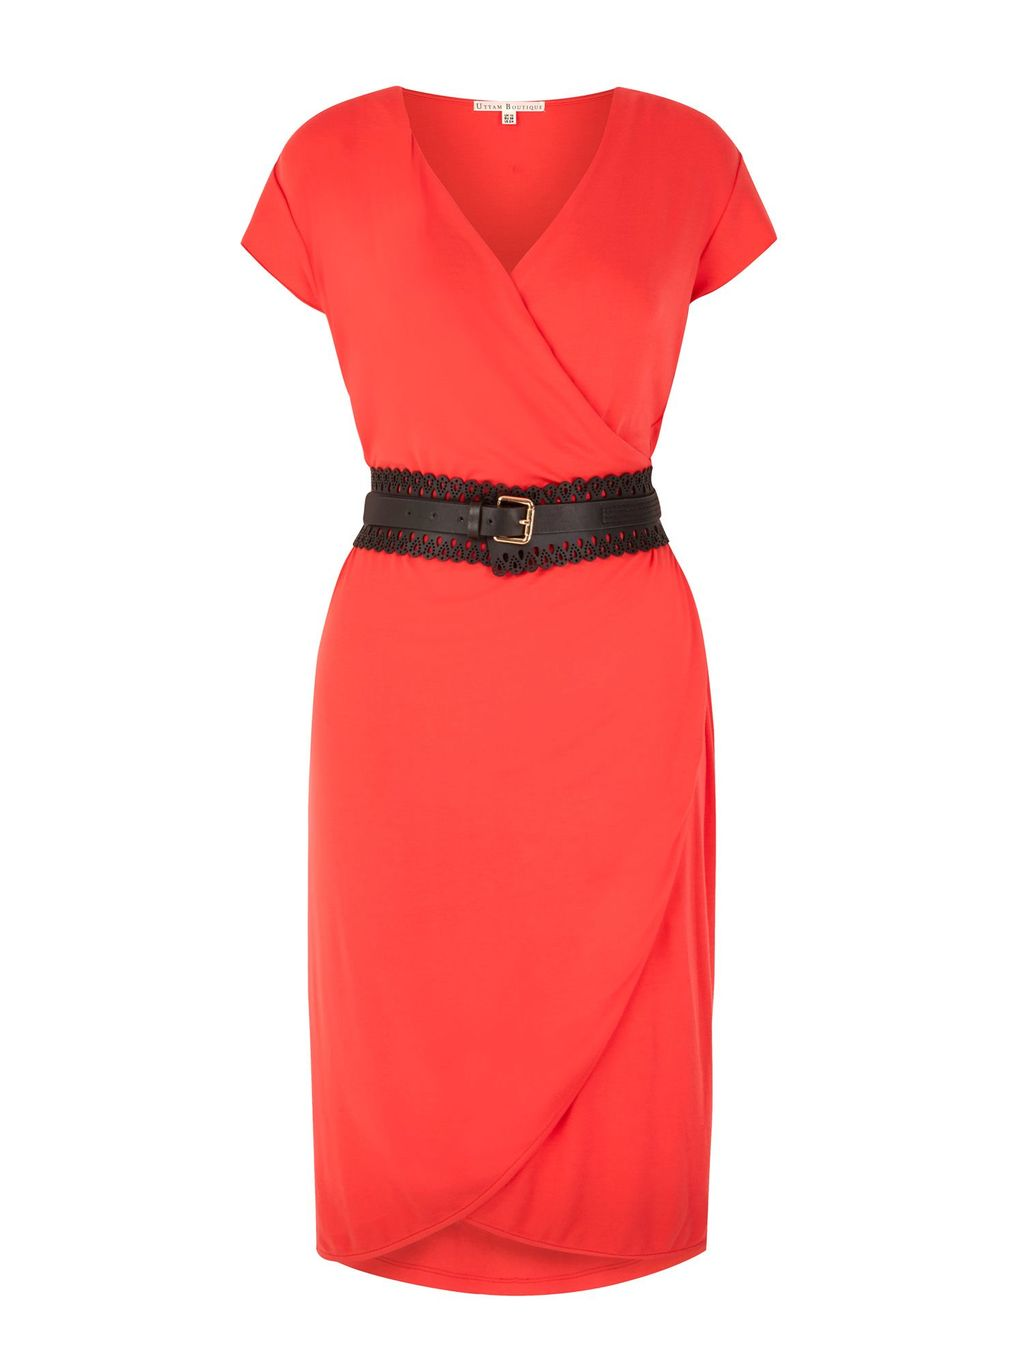 Obi Belted Wrap Dress With Belt Included, Coral - style: faux wrap/wrap; neckline: v-neck; pattern: plain; waist detail: belted waist/tie at waist/drawstring; predominant colour: coral; occasions: evening; length: on the knee; fit: body skimming; fibres: viscose/rayon - stretch; sleeve length: short sleeve; sleeve style: standard; pattern type: fabric; texture group: jersey - stretchy/drapey; season: s/s 2016; wardrobe: event